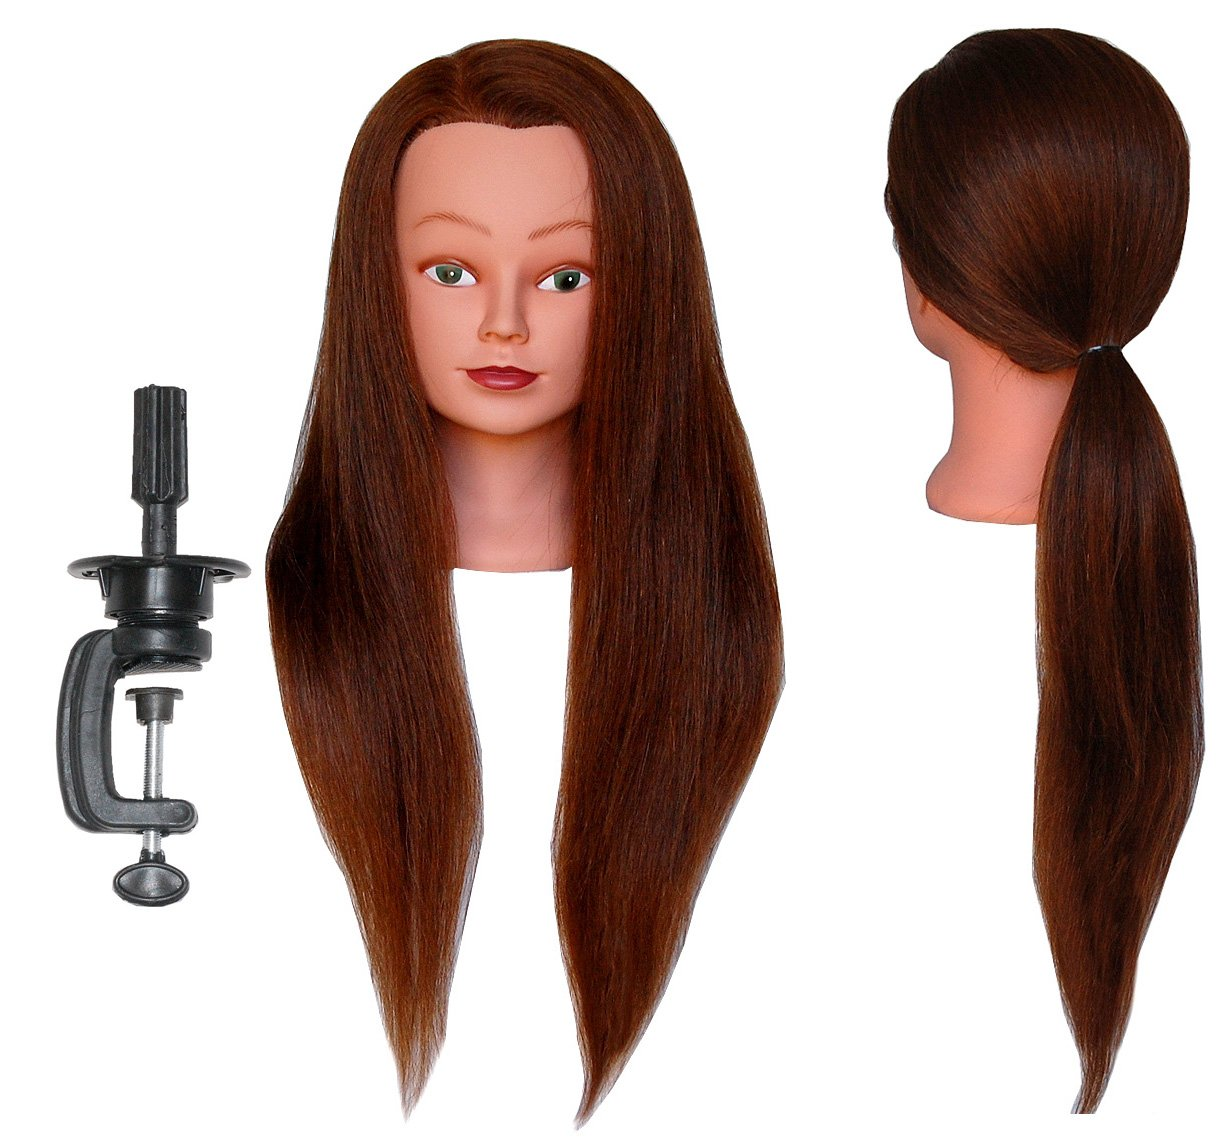 (SUPER LONG) HairZtar 100% Human Hair 26 - 28'' Mannequin Head Hairdresser Training Head Manikin Cosmetology Doll Head (LUCY+CLAMP) by HairZtar (Image #1)